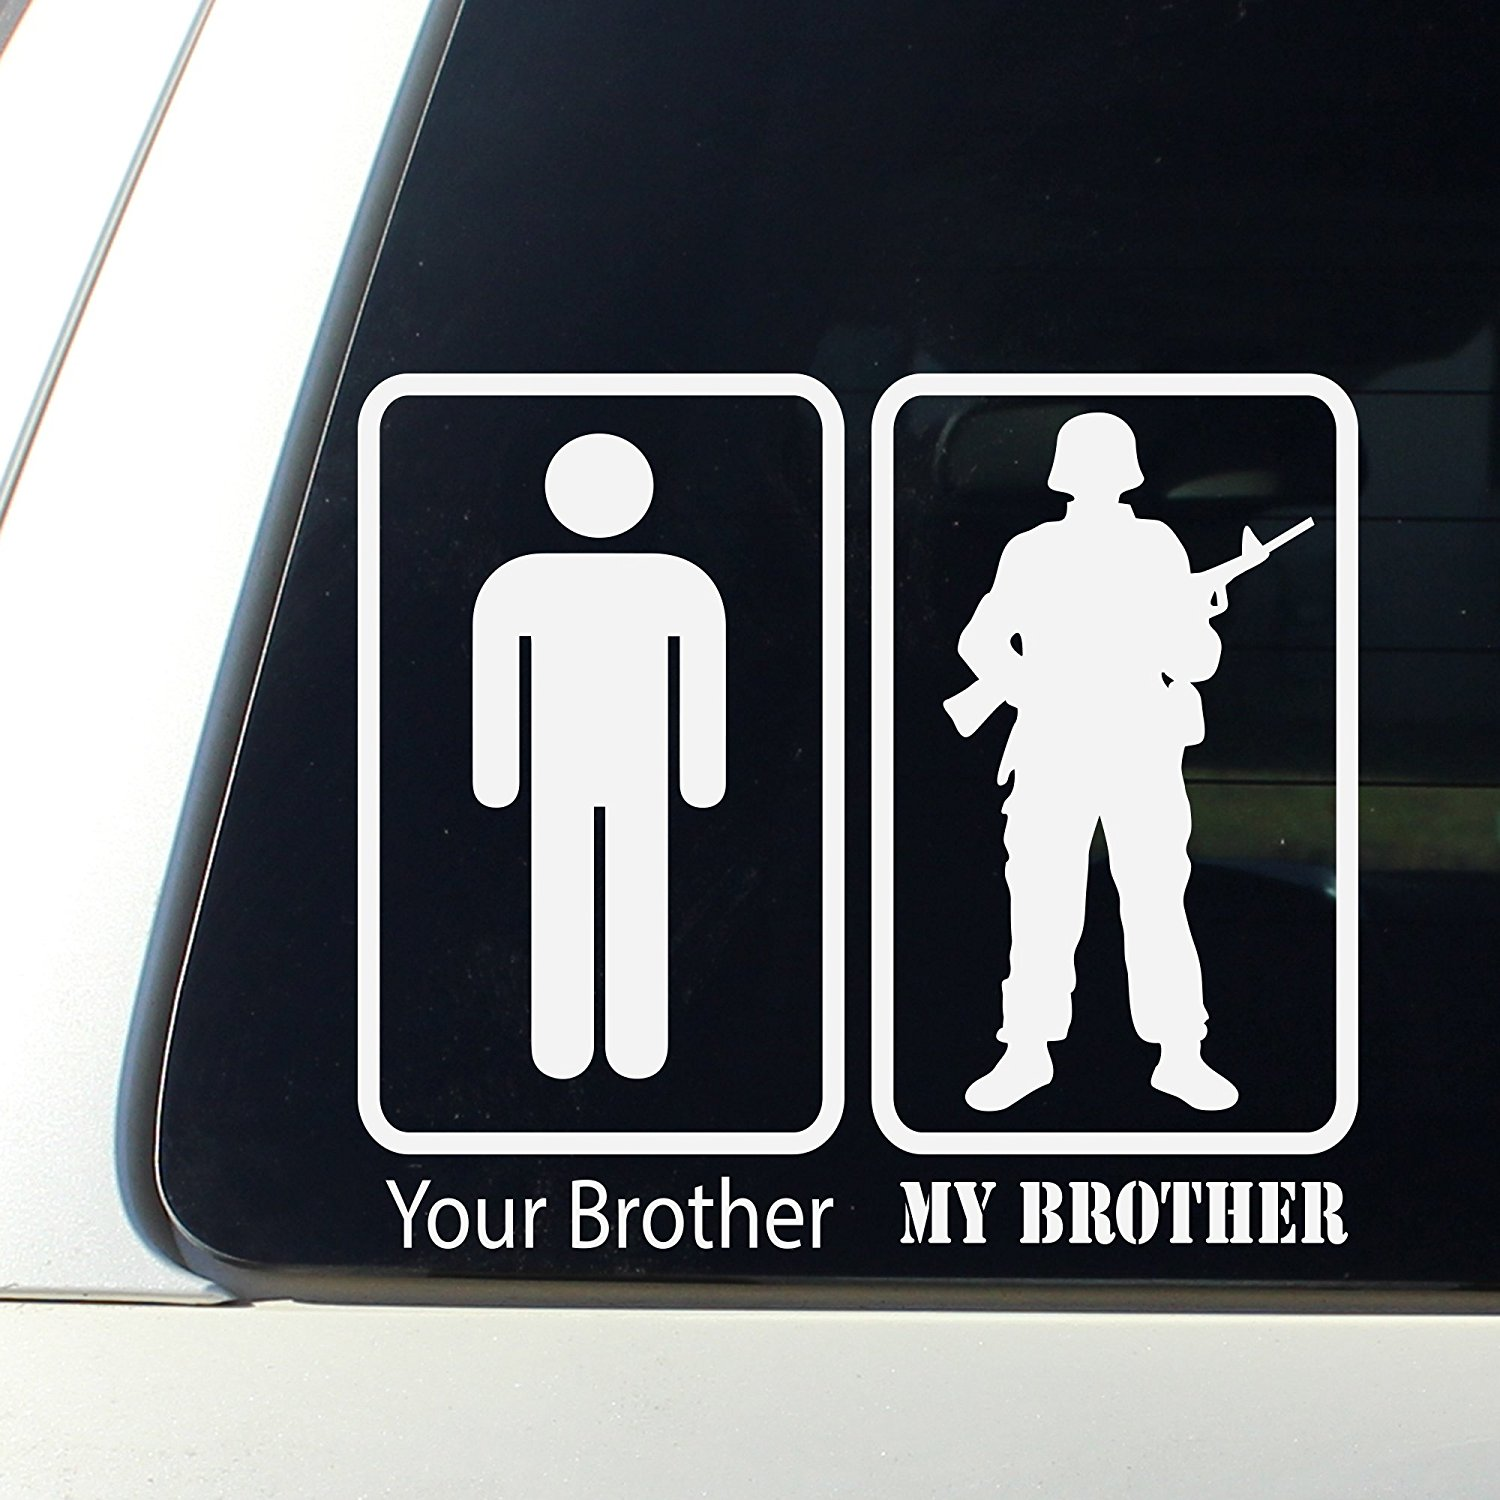 My brother your brother decal bumper sticker marine core navy army air force national guard protect usa